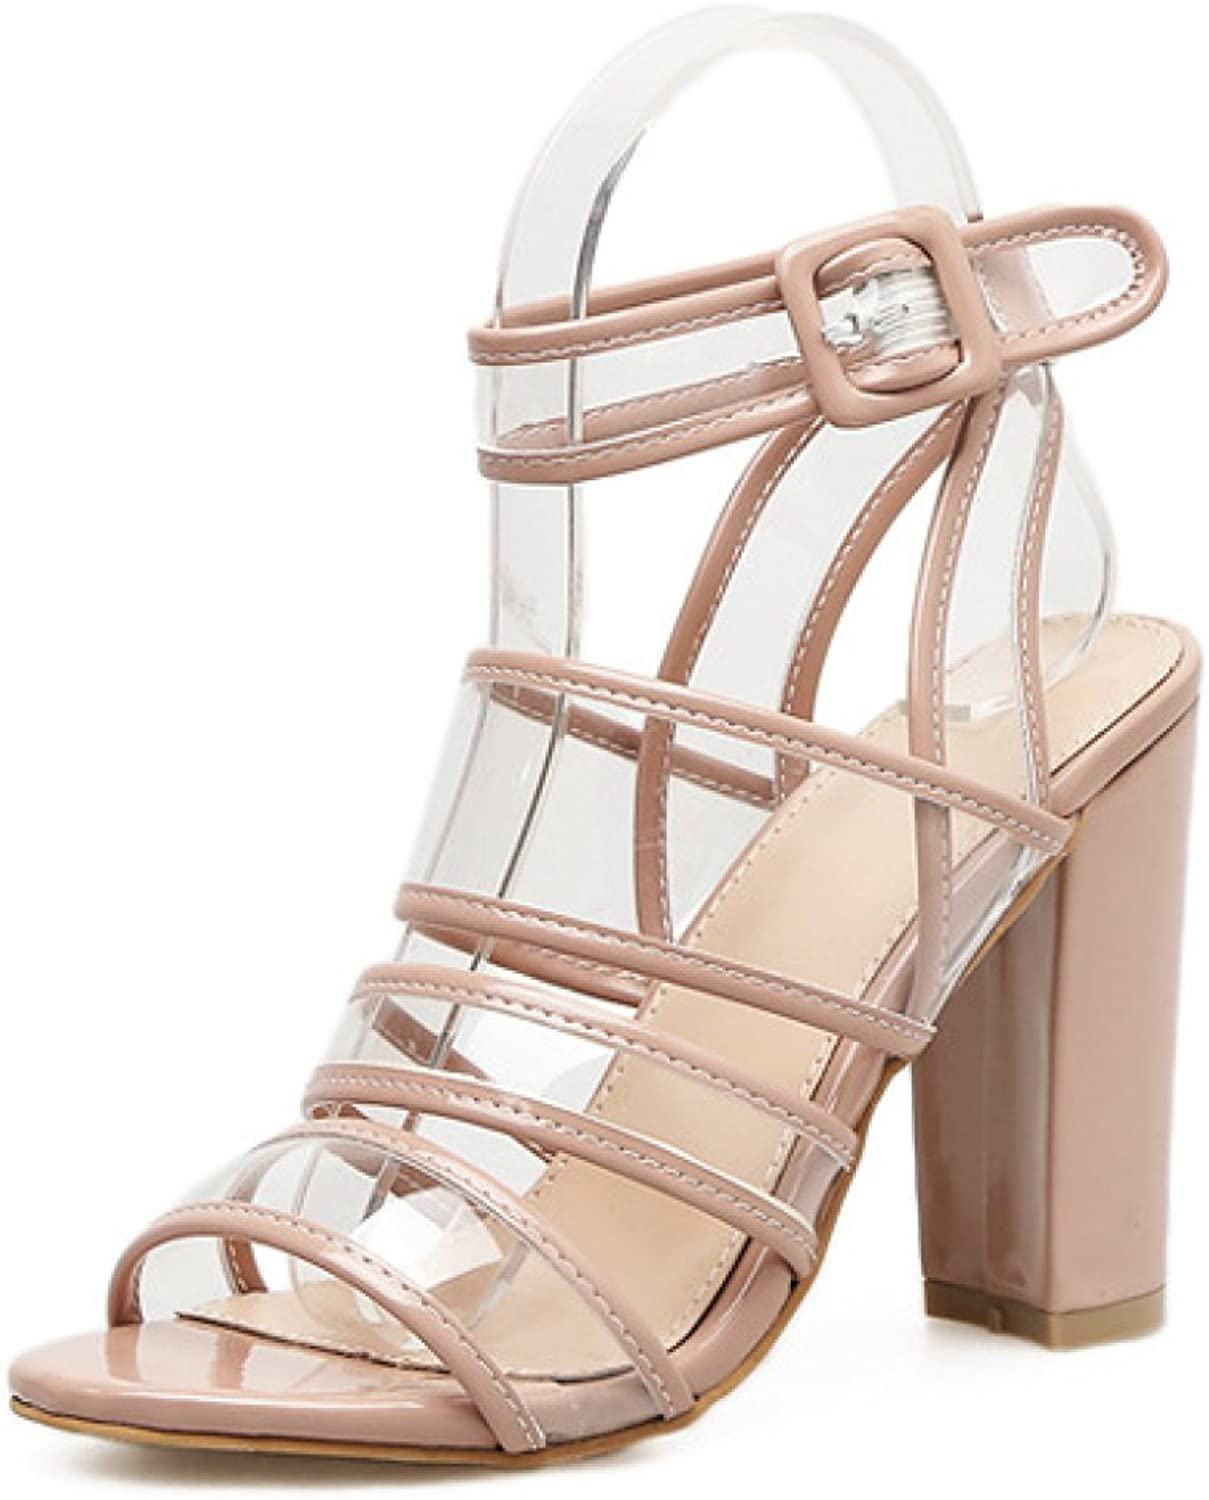 Women's High Heel Transparent Strappy Buckle Ankle Strap shoes Ladies Party Wedding Prom Sandals Size,Beige-EU 40=9B(M) US